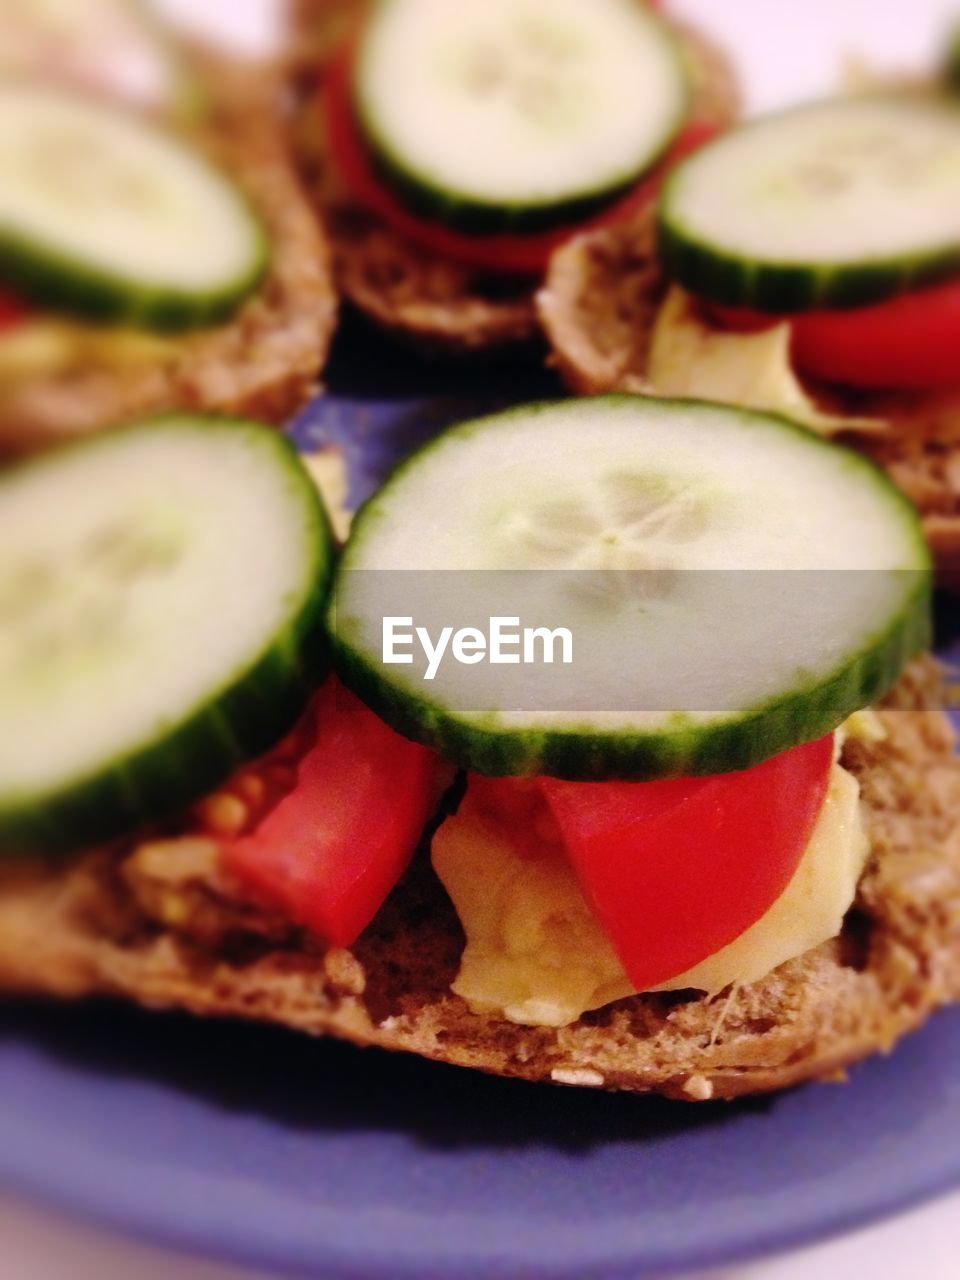 food and drink, food, slice, close-up, healthy eating, freshness, indoors, selective focus, no people, cucumber, vegetable, drink, plate, ready-to-eat, day